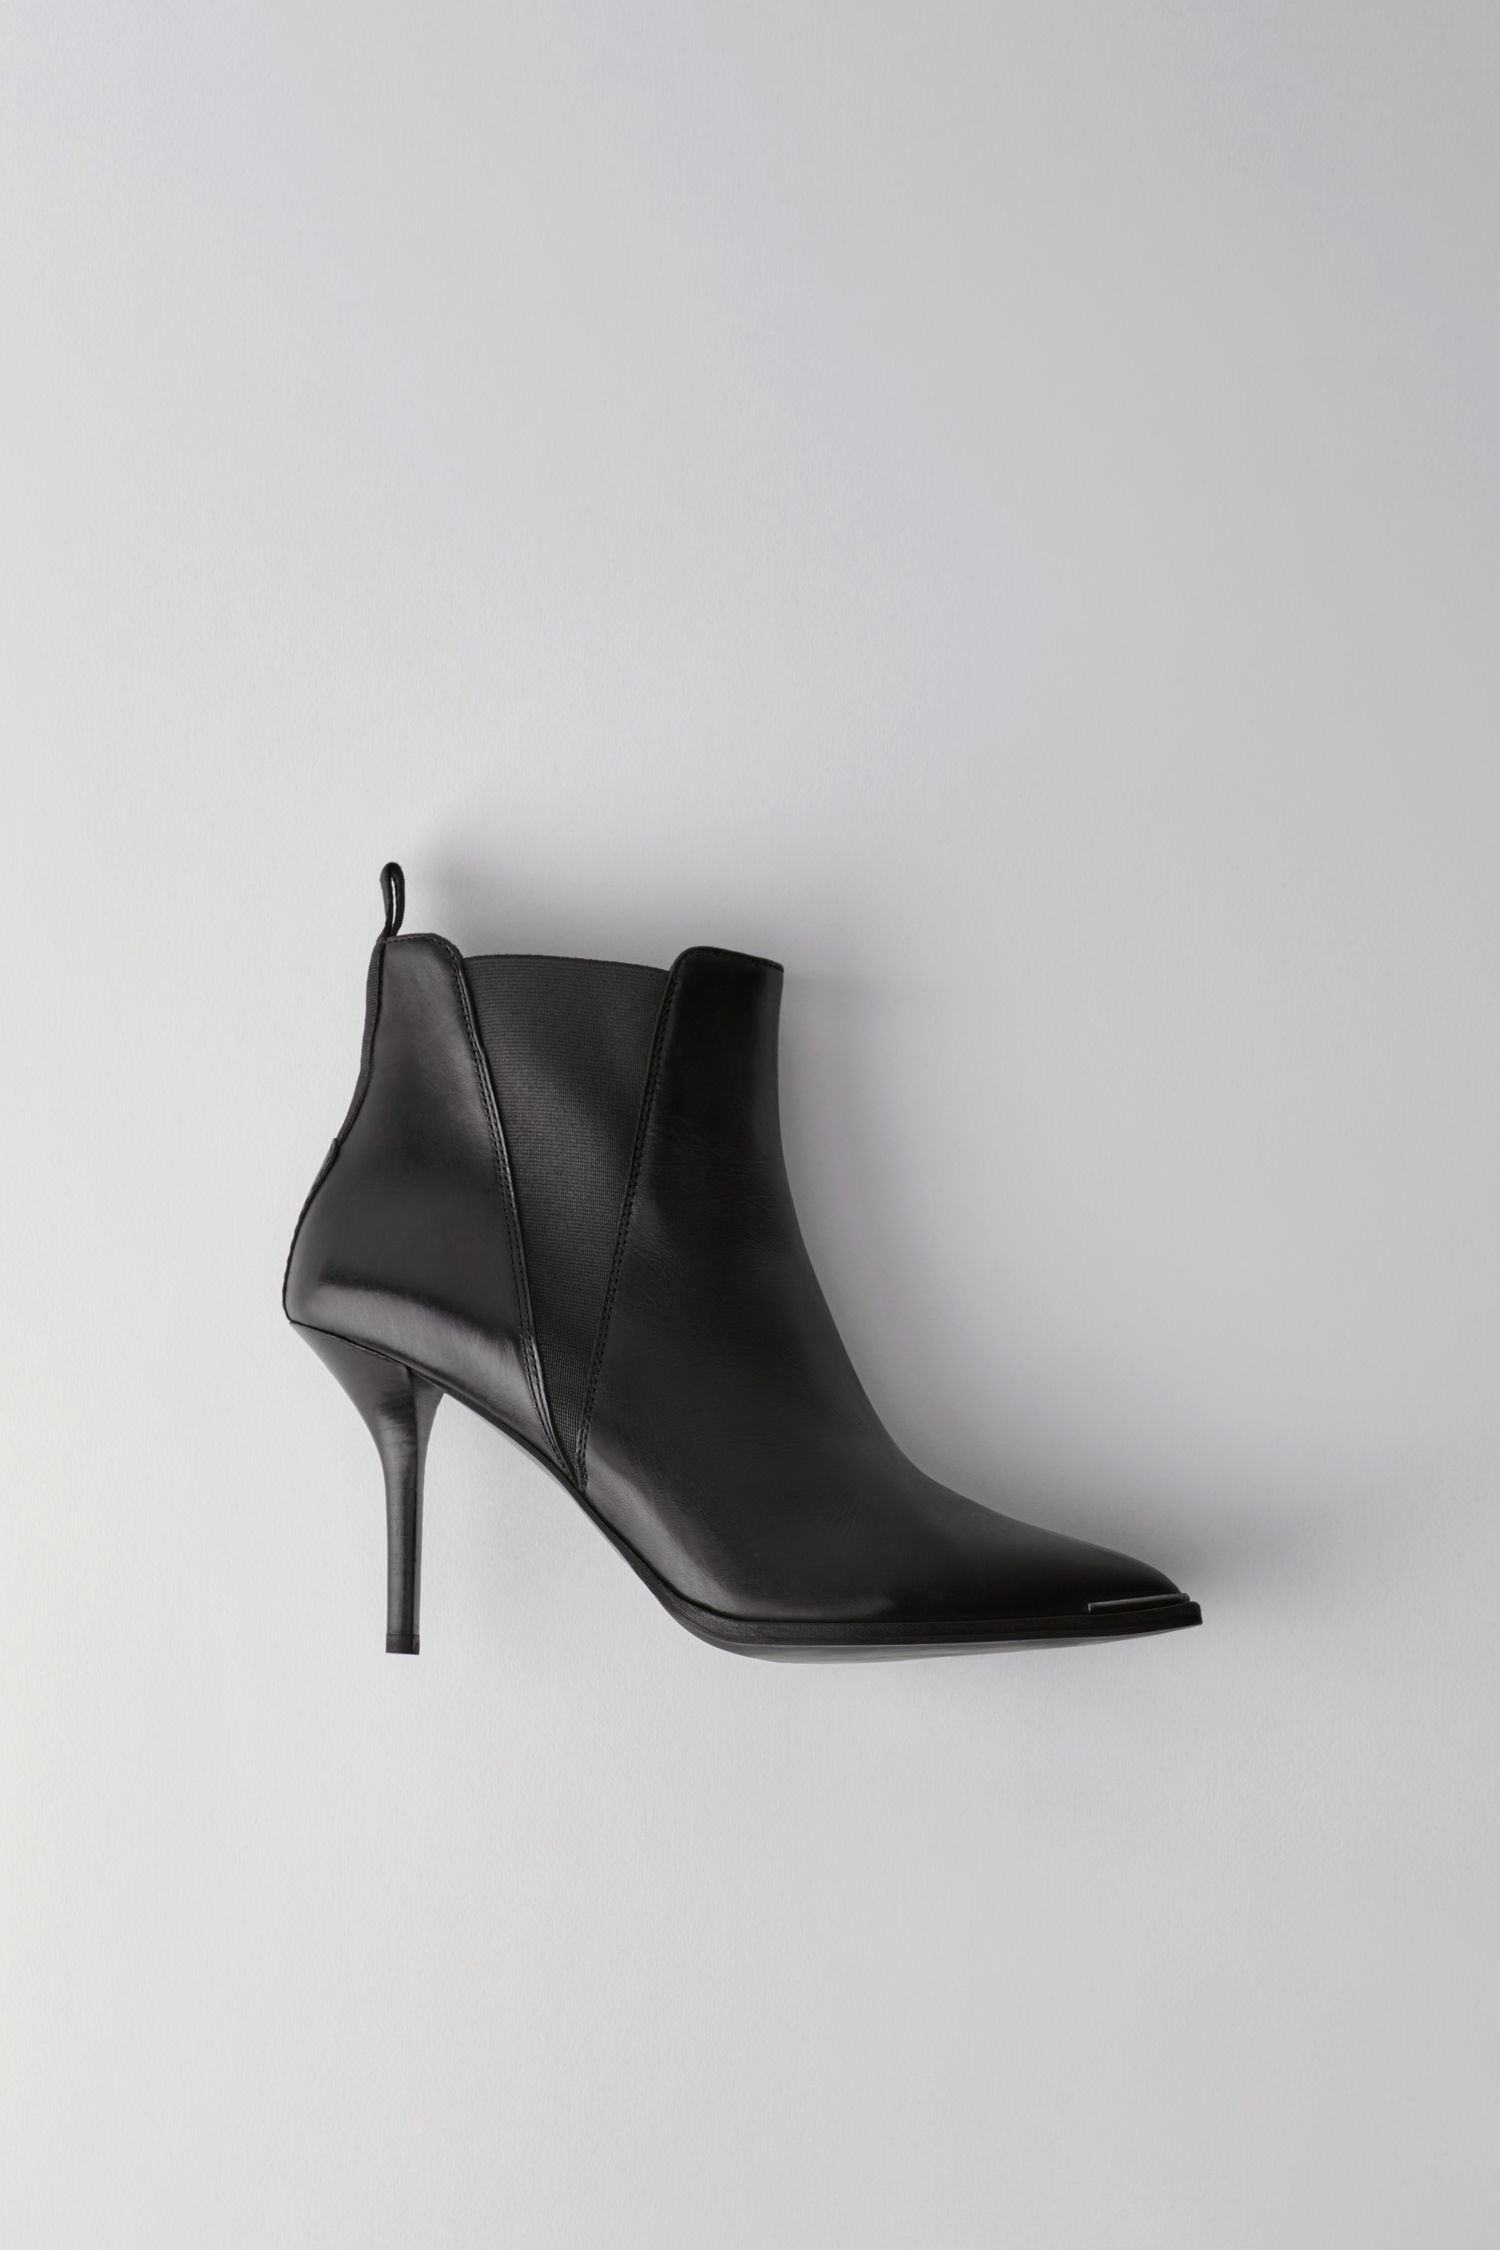 Acne Studios 4 - Jemma Leather Heeled Boot - Black